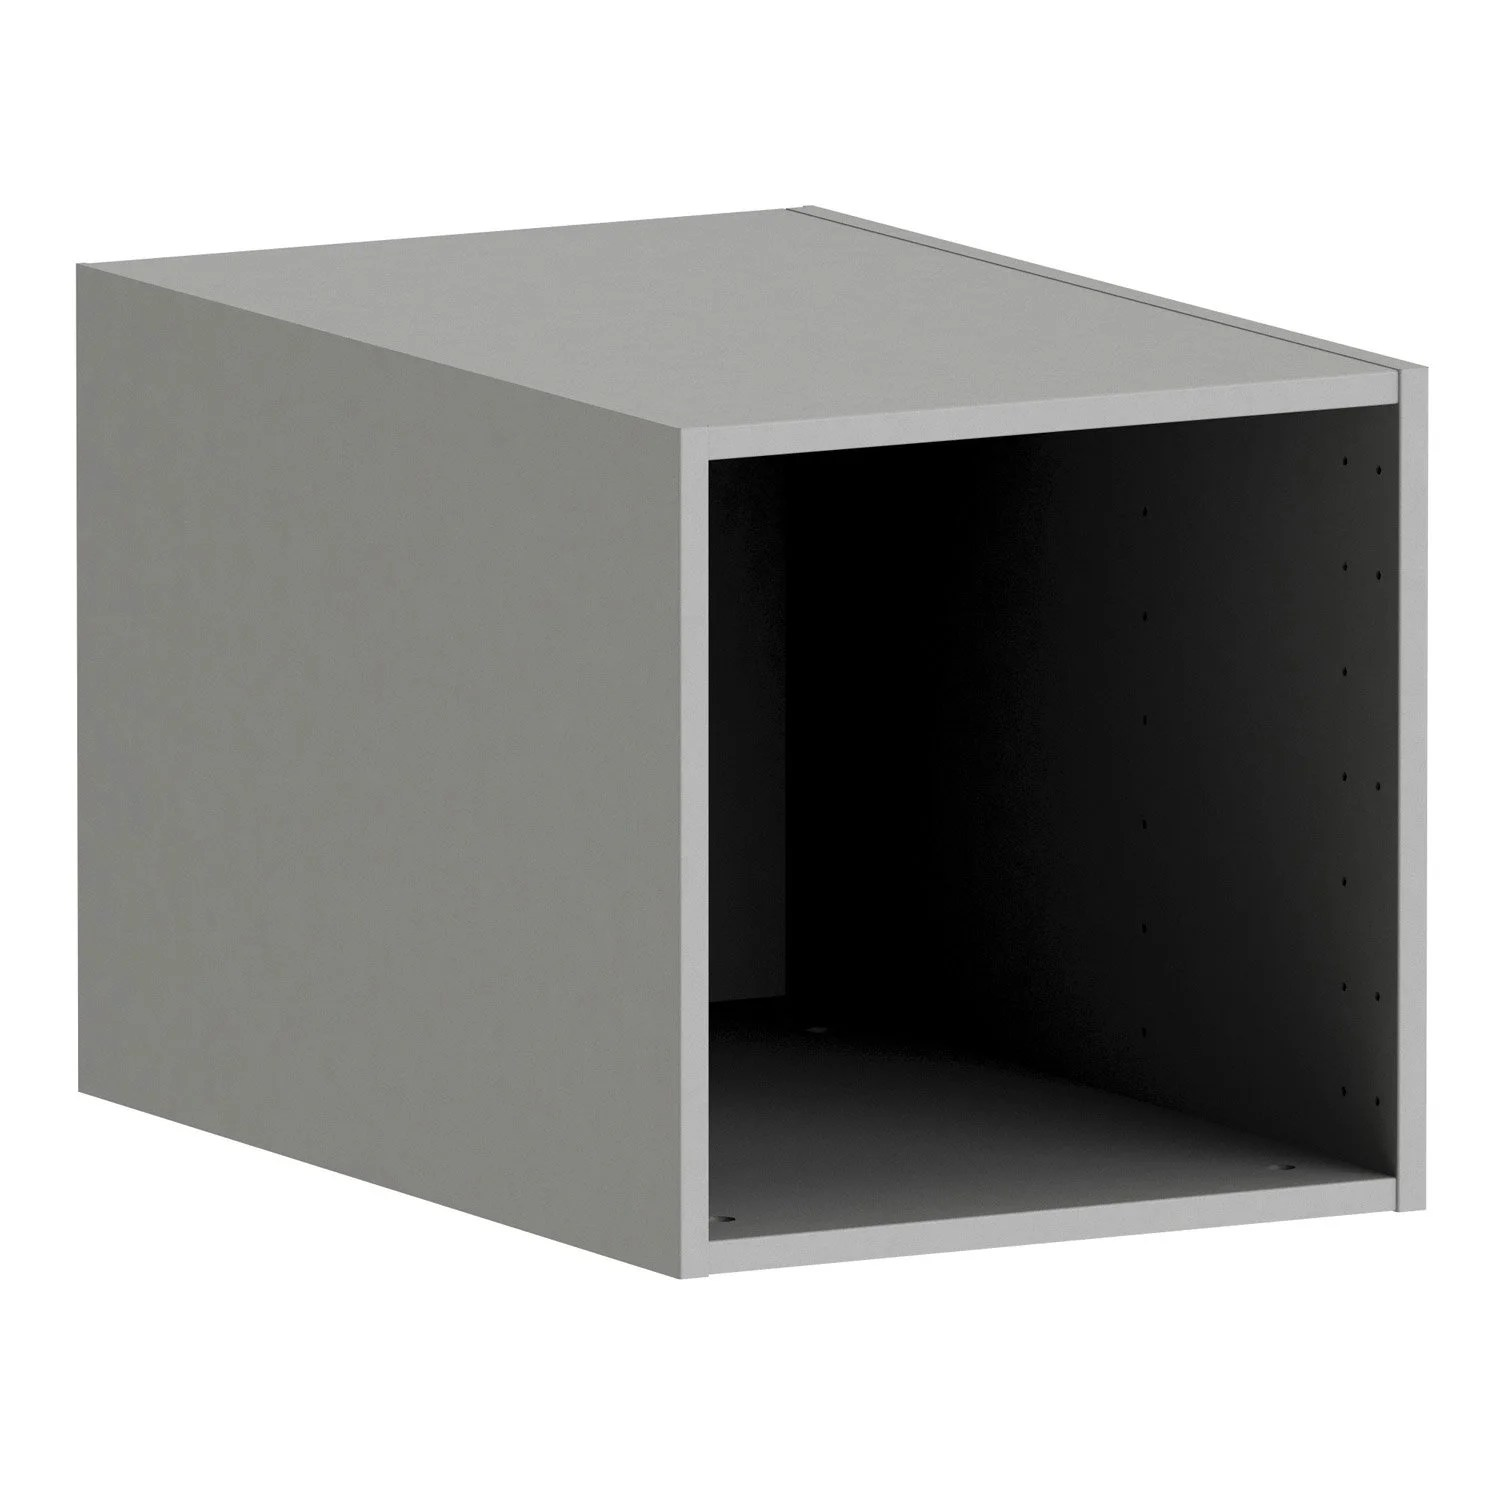 Caisson Spaceo Home Leroy Merlin Caisson Spaceo Home 40 X 40 X 60 Cm Anthracite Leroy Merlin